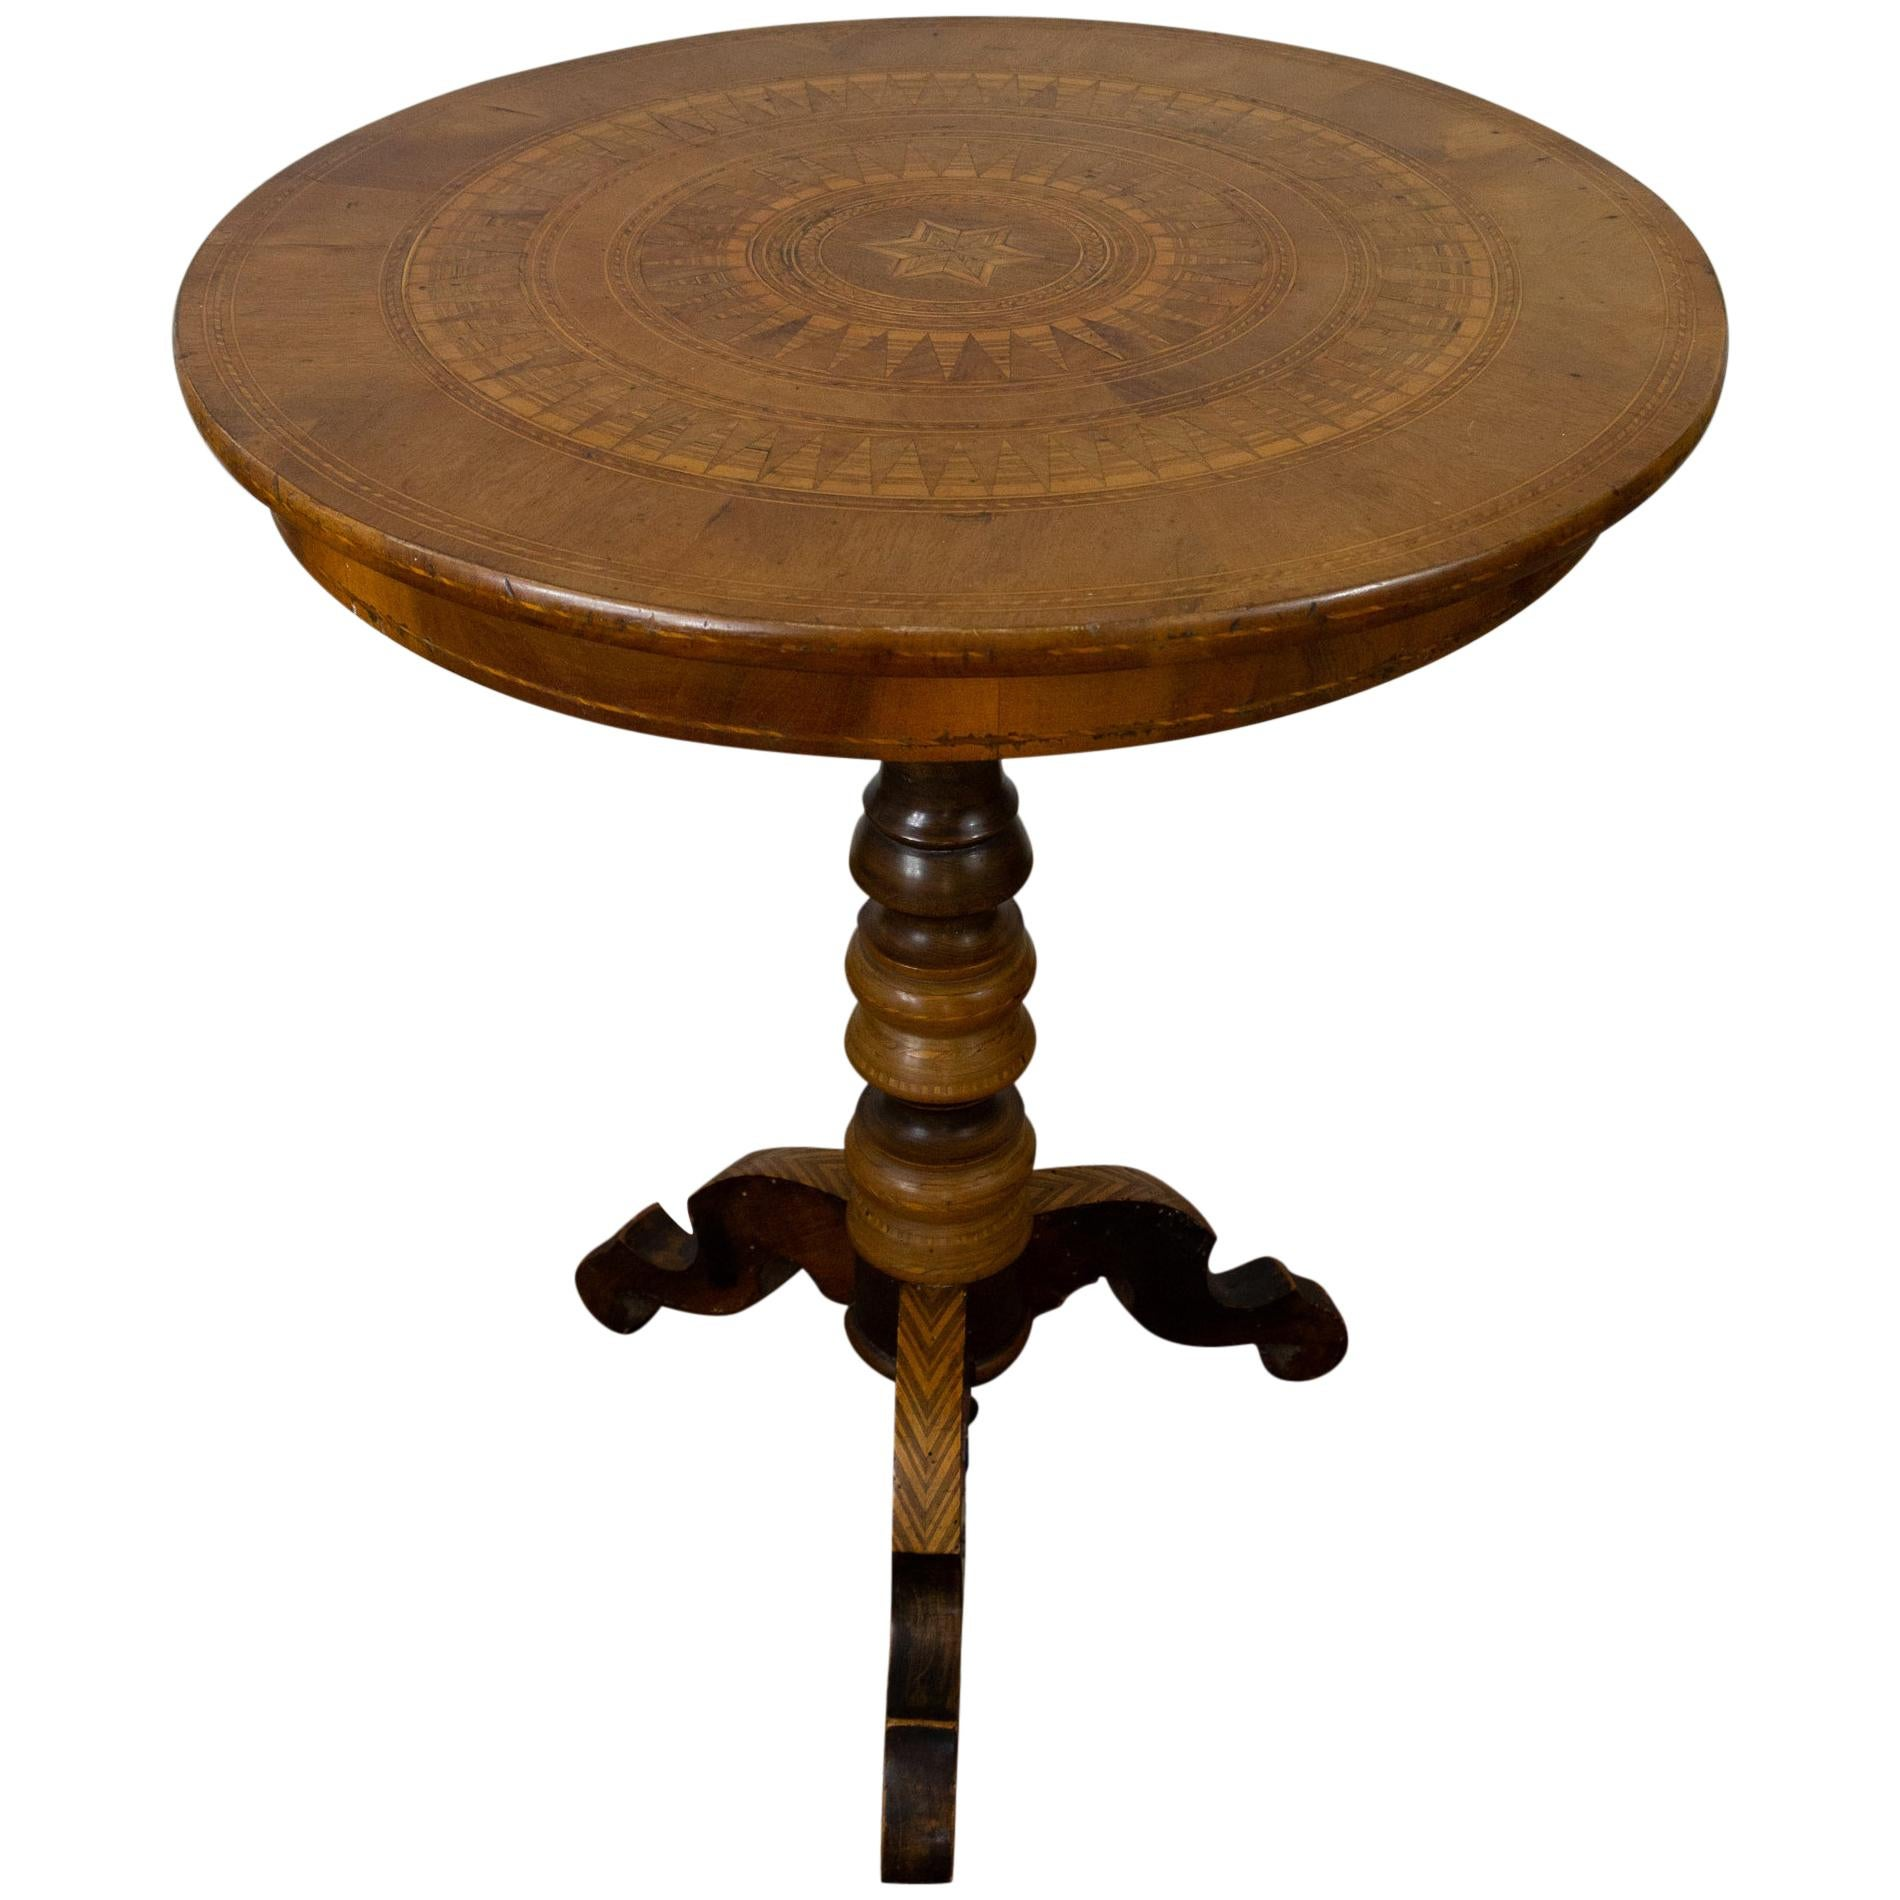 Tripod Pedestal Table in Marquetry and Mixed Wood, Italy, 19th Century